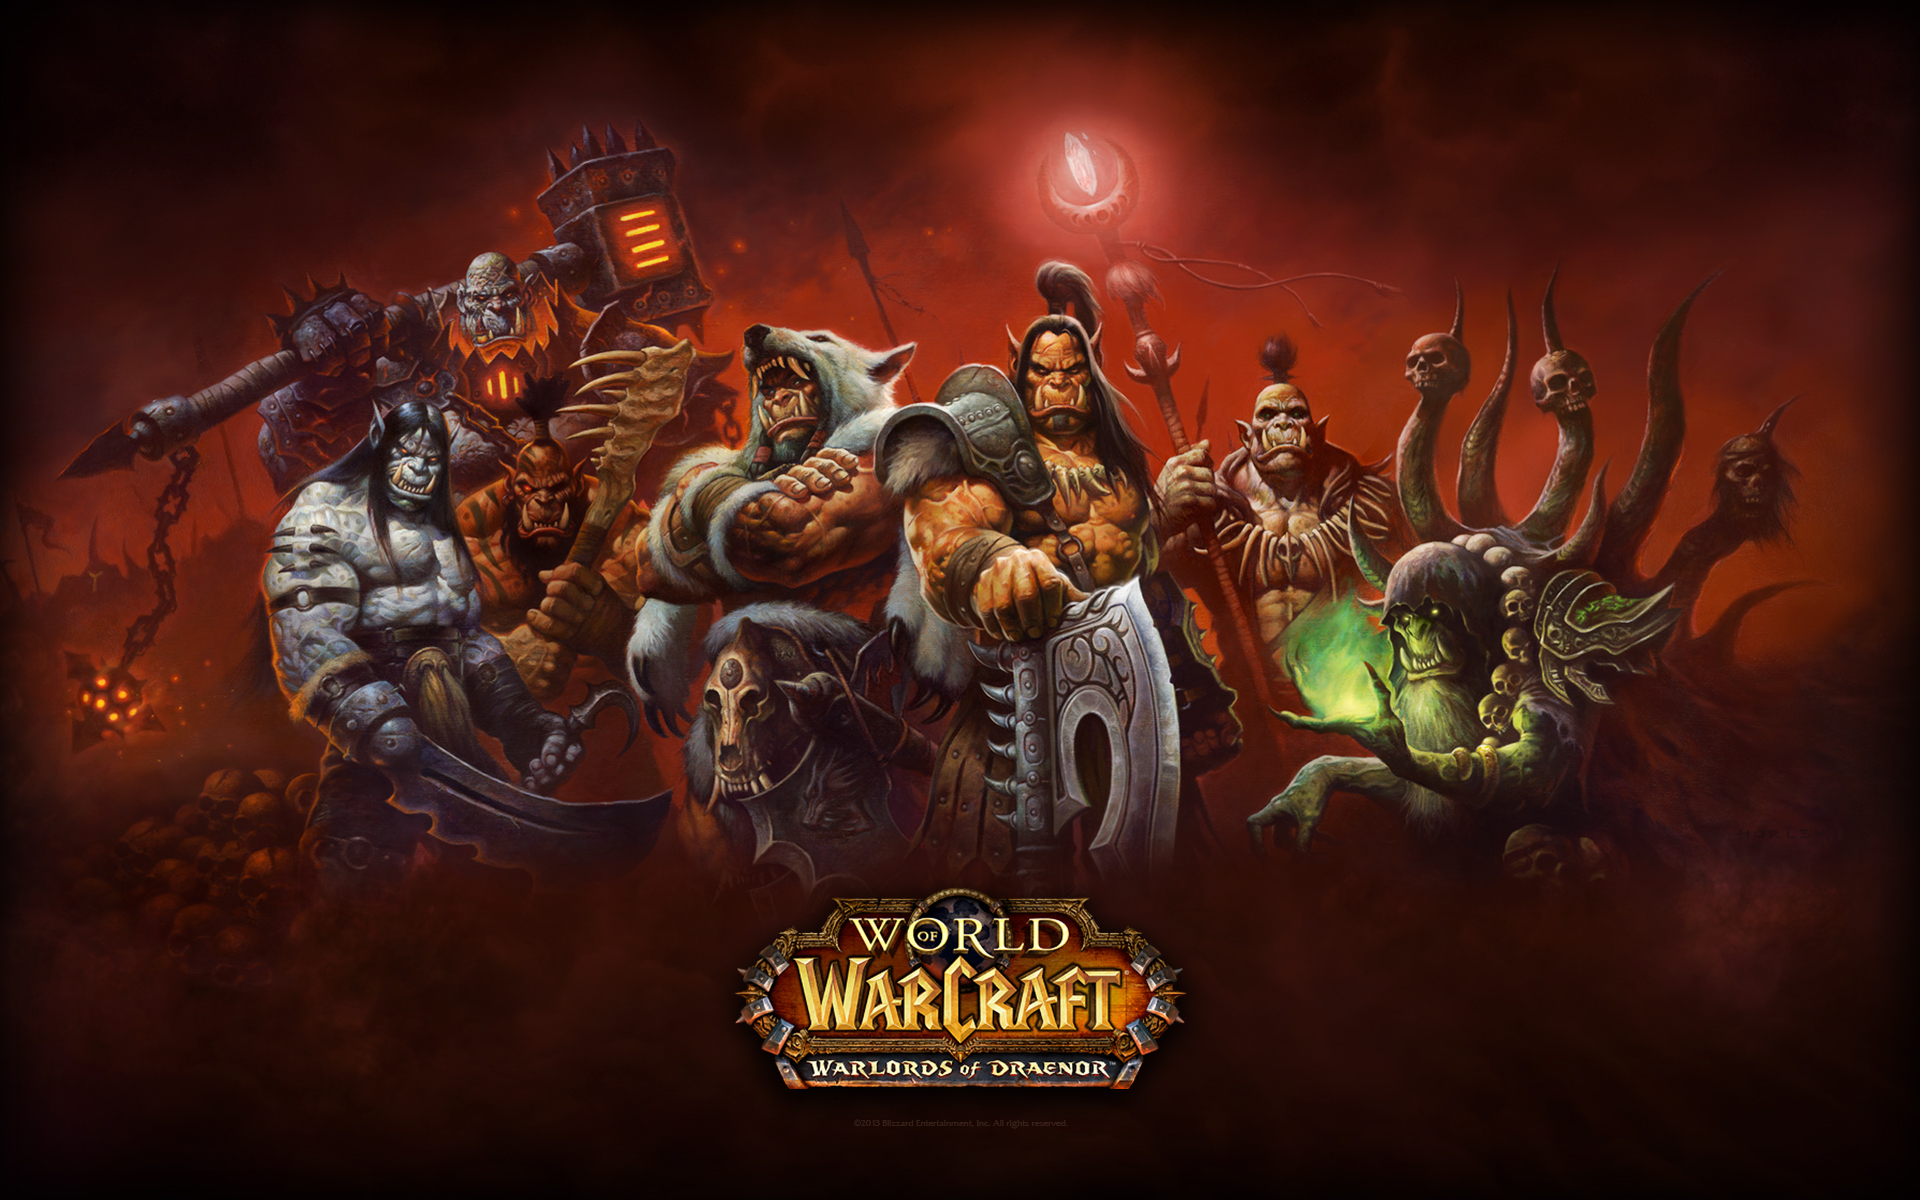 This 'Warlords Of Draenor' Trailer Is Amazing, But People Still Play 'World Of Warcraft'?